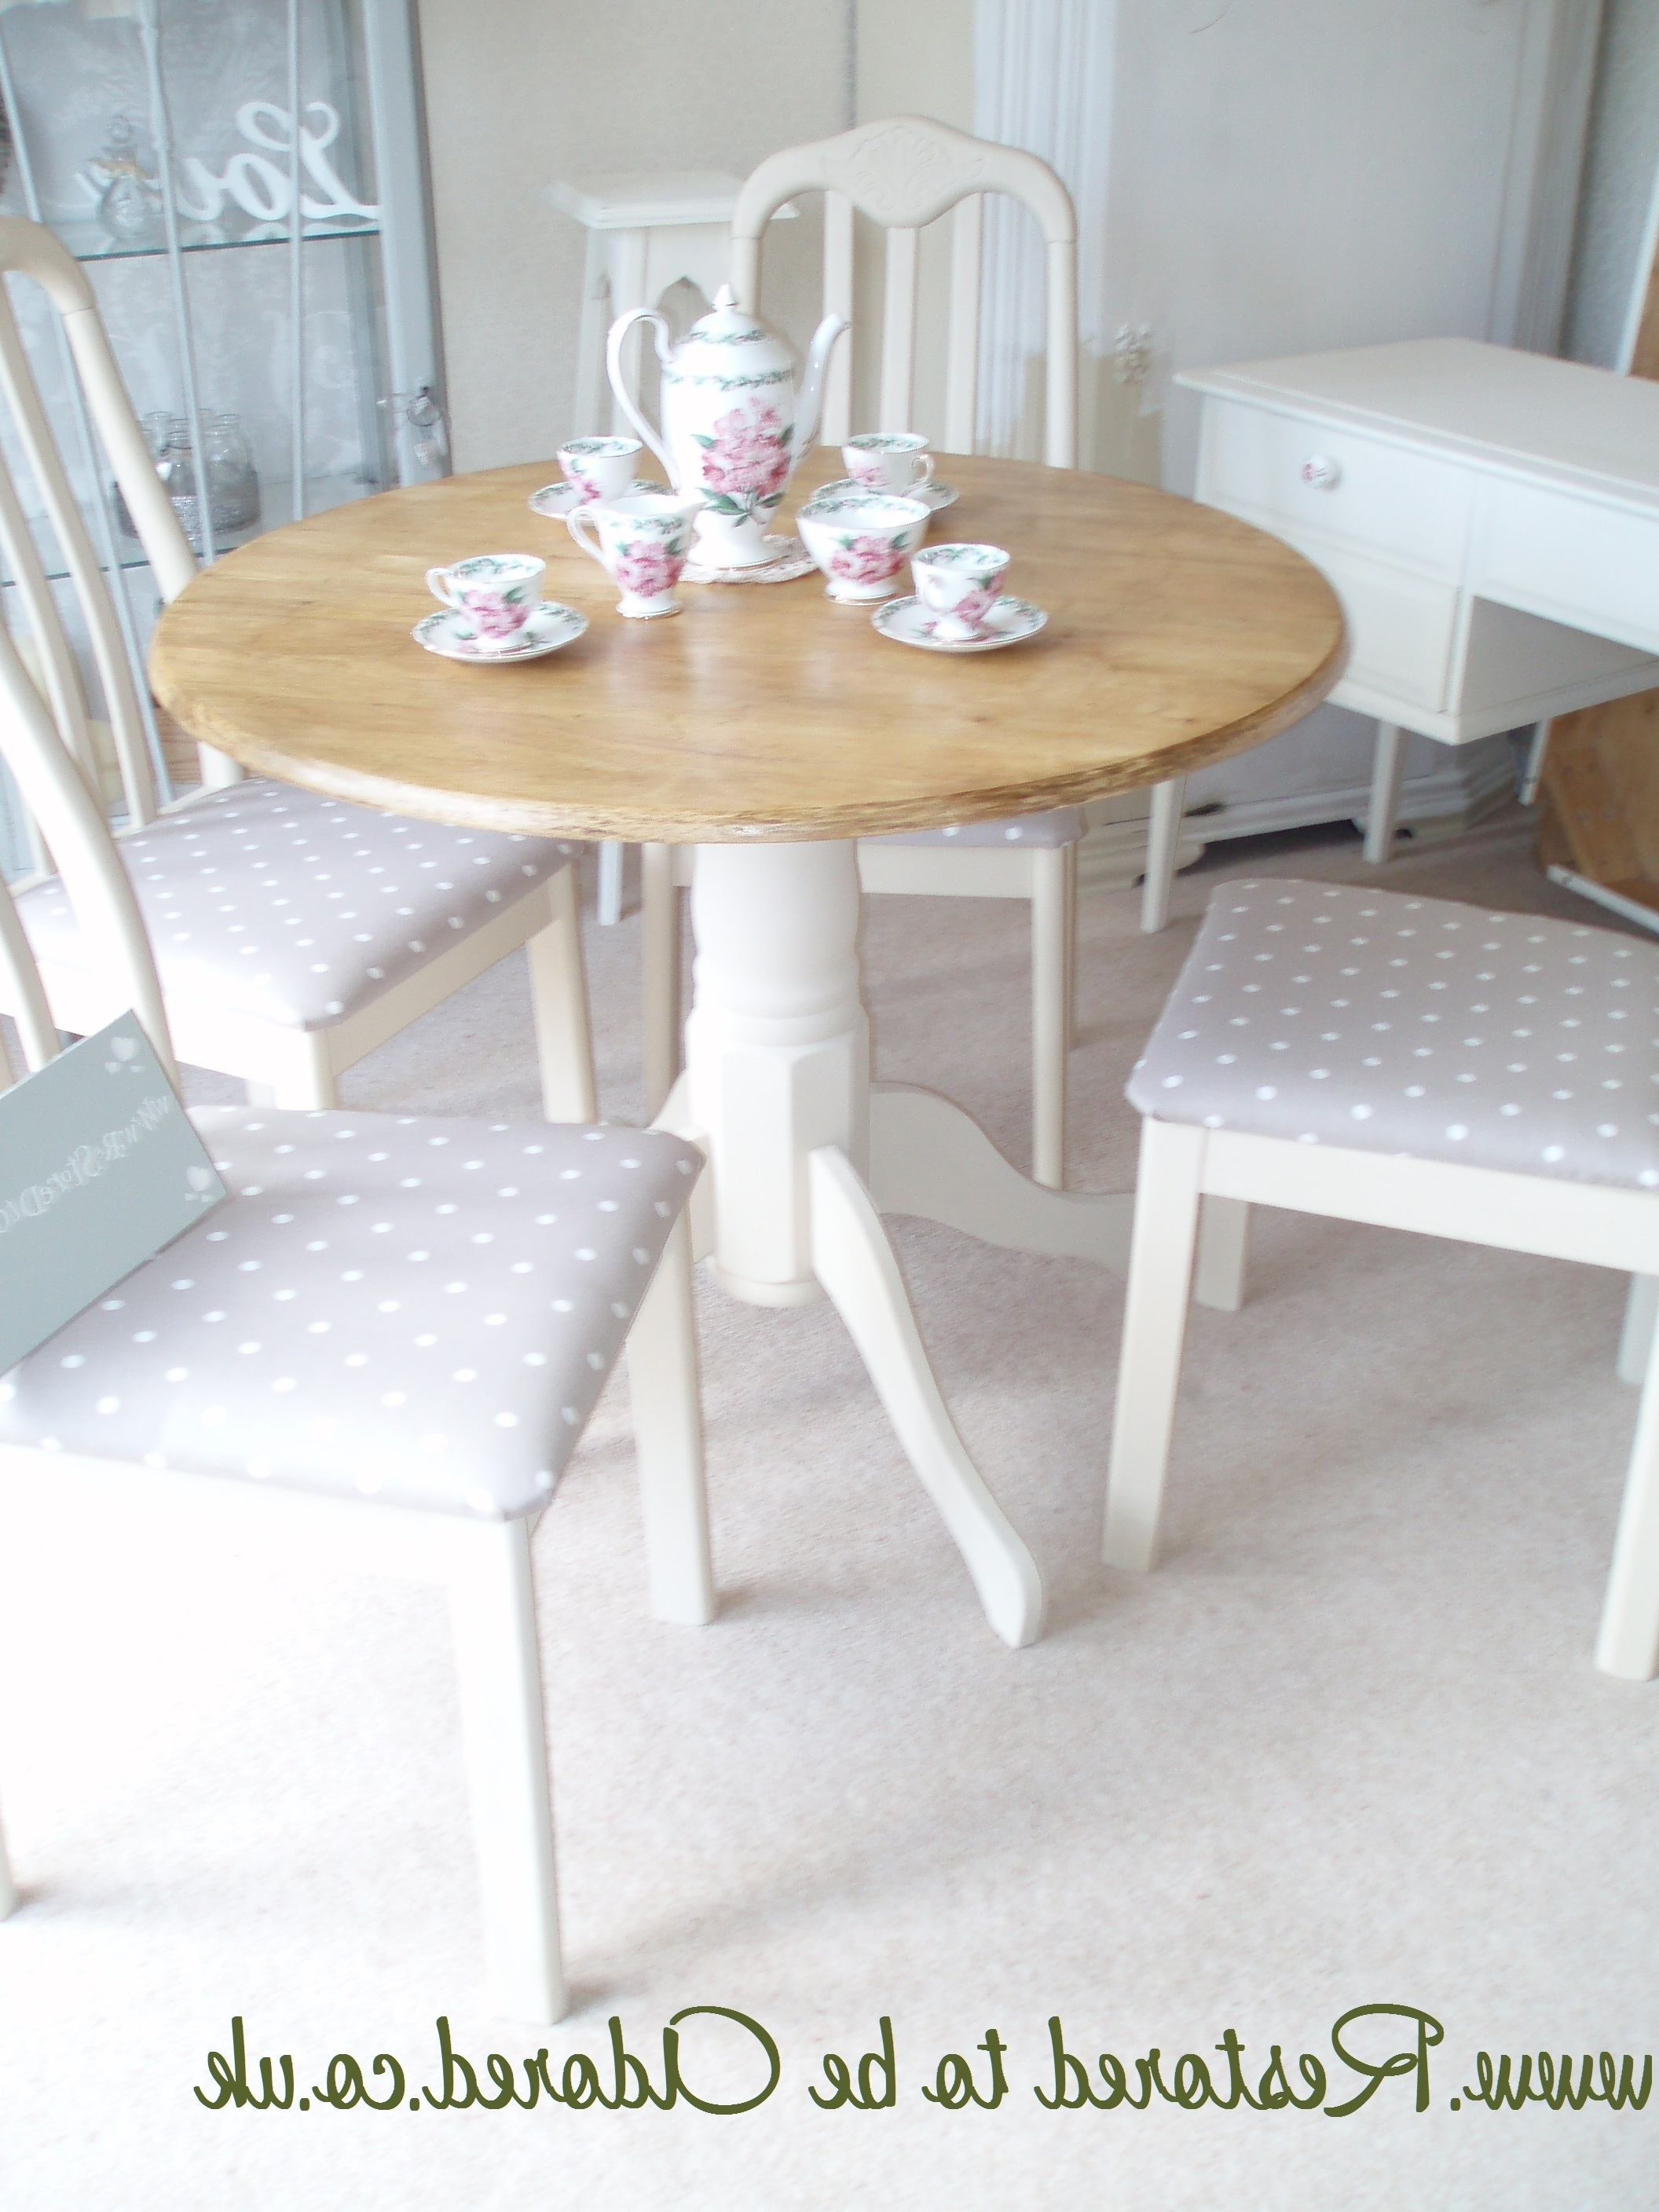 Best And Newest Shabby Chic Dining Table And Chairs ~ Before And After – Restored To Throughout Shabby Dining Tables And Chairs (View 3 of 25)